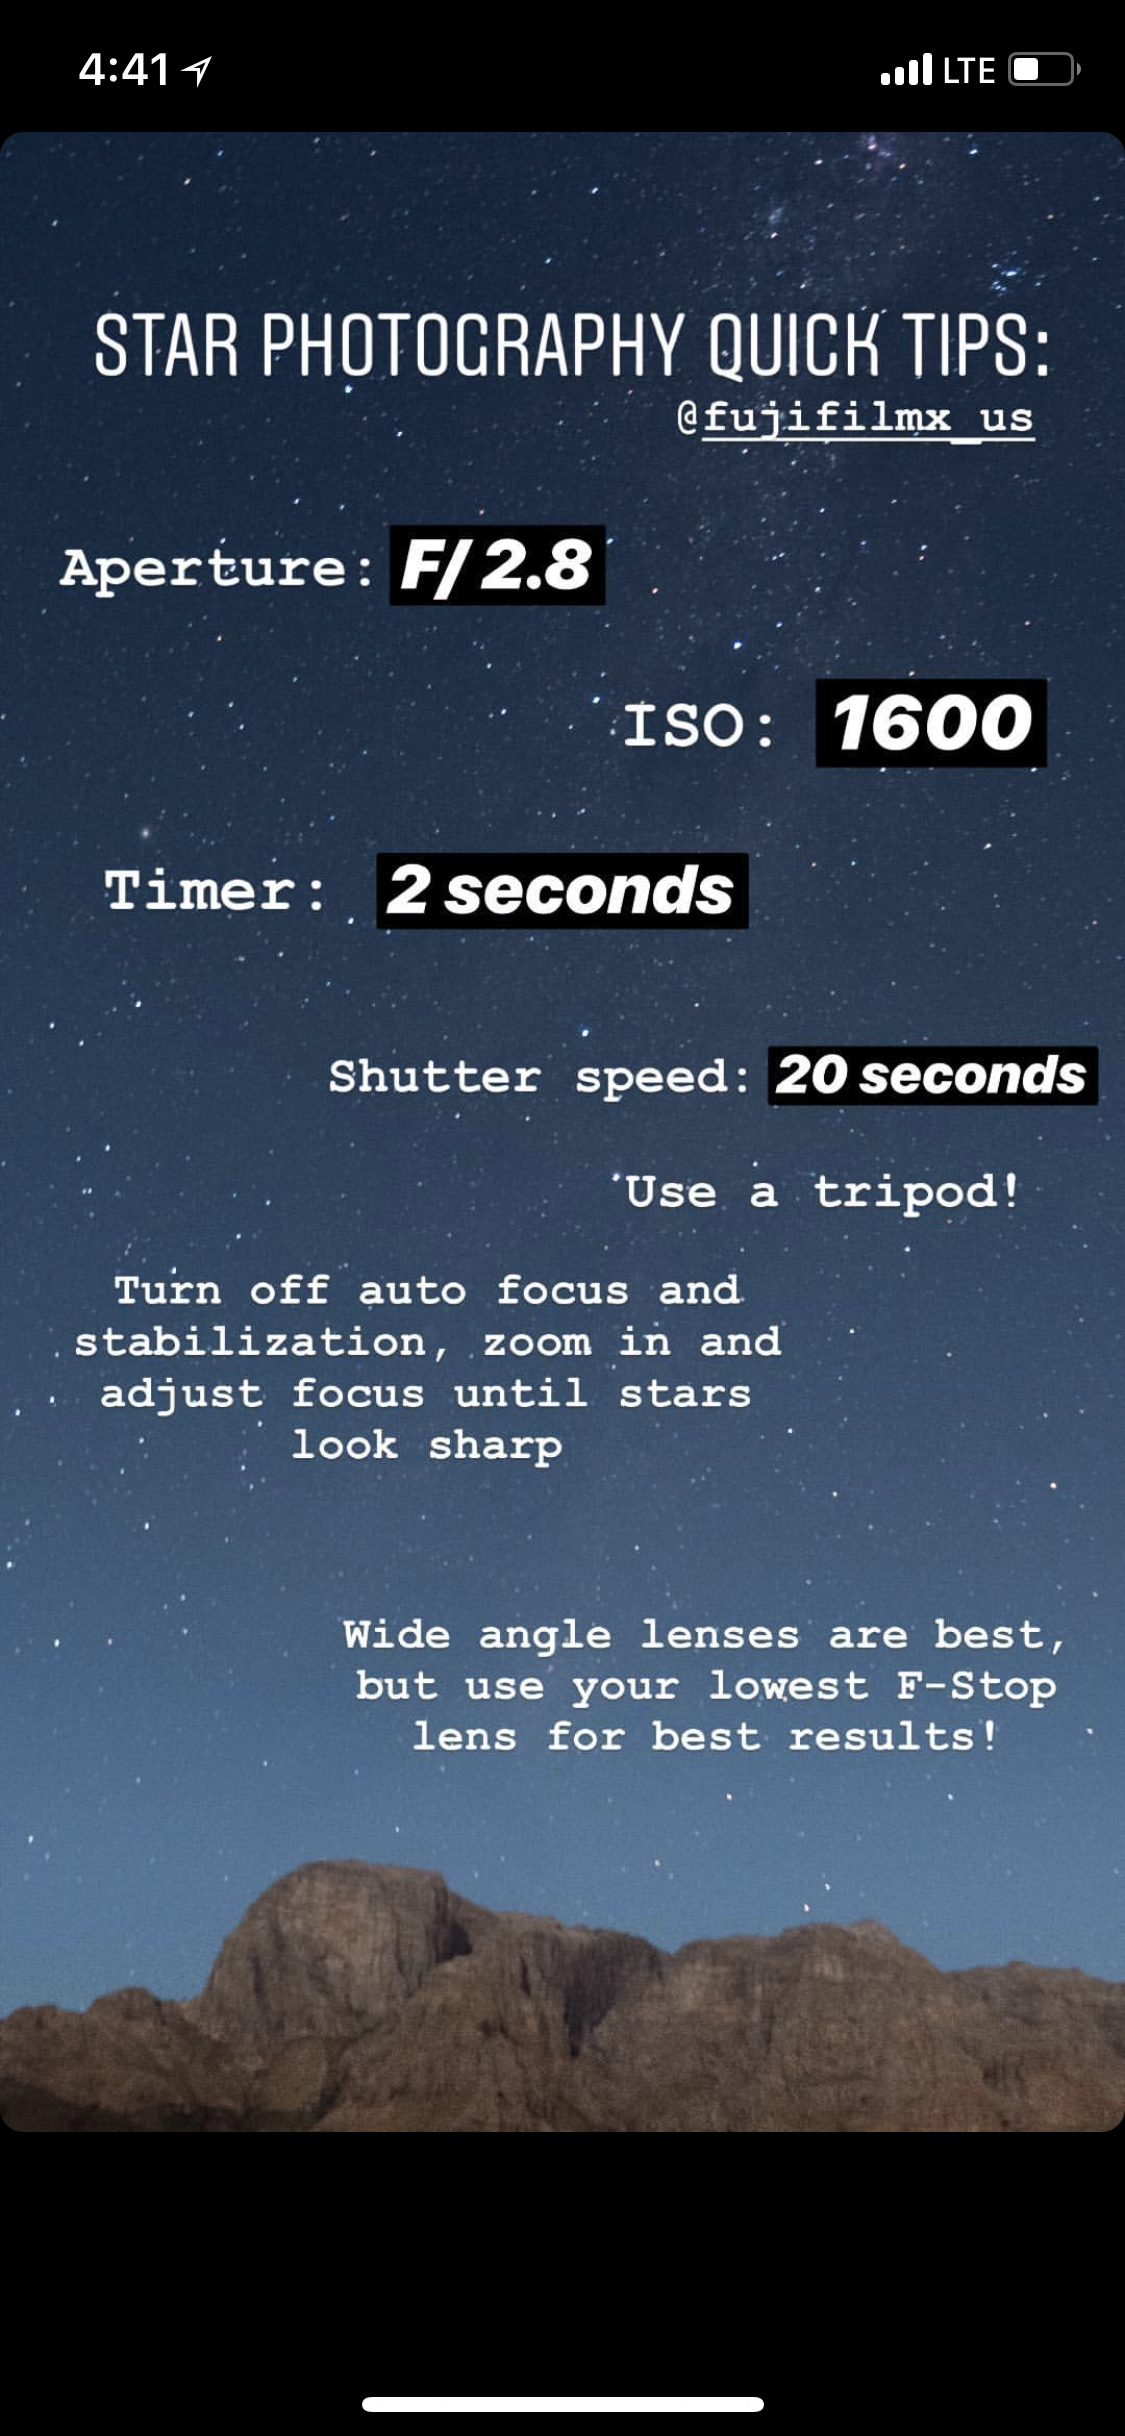 How To Take Professional Quality Photos Of The Stars And Night Sky Manual Photography Photography Basics Photography Techniques